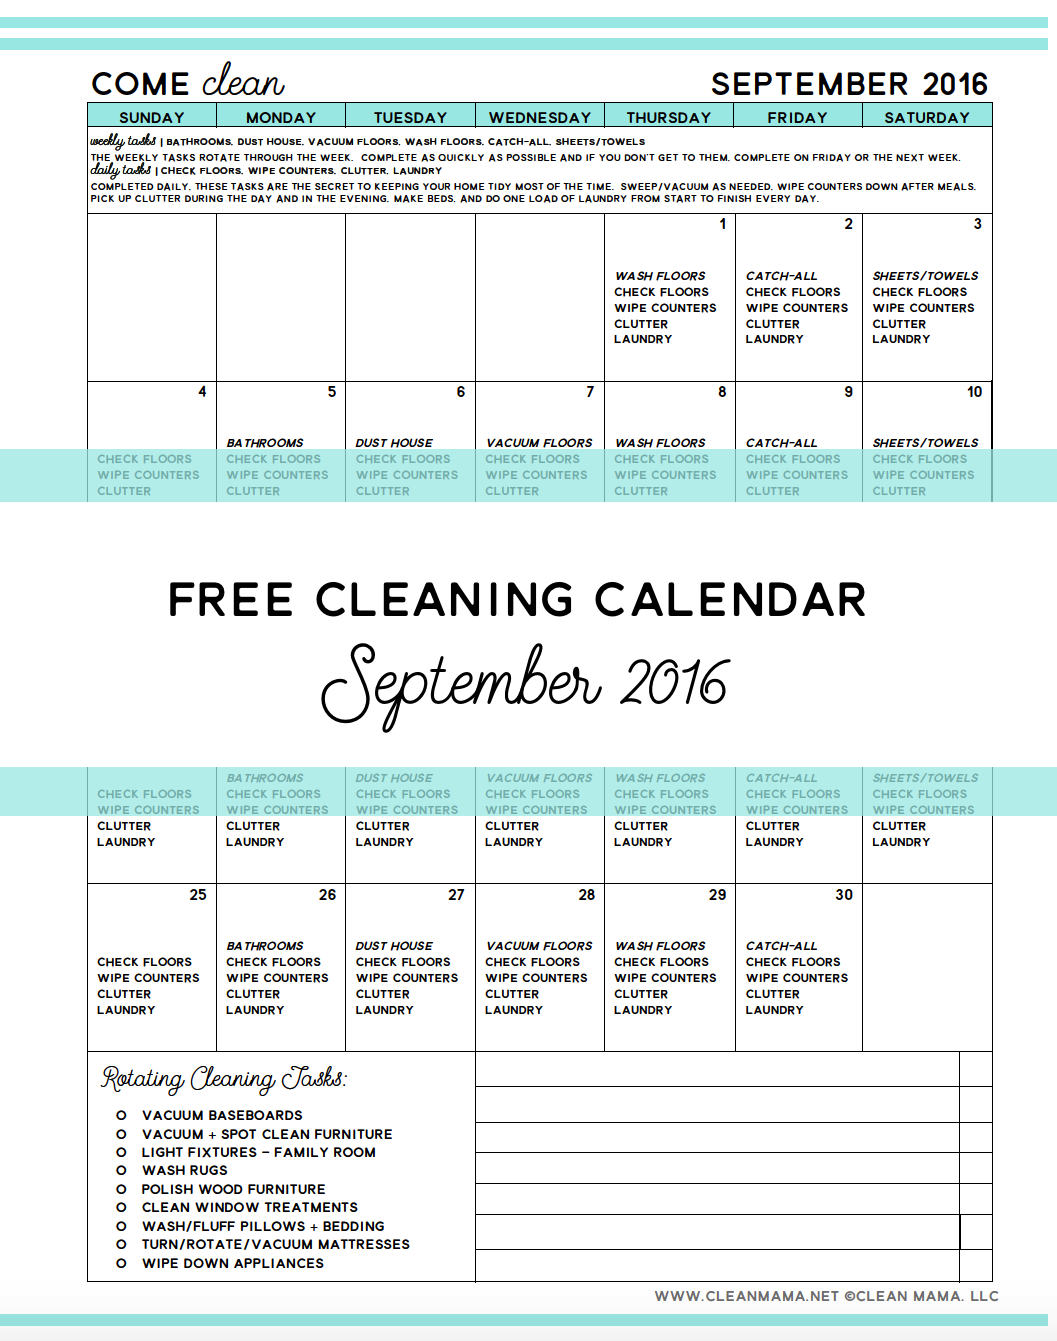 Free Cleaning Calendar - September 2016 - Clean Mama